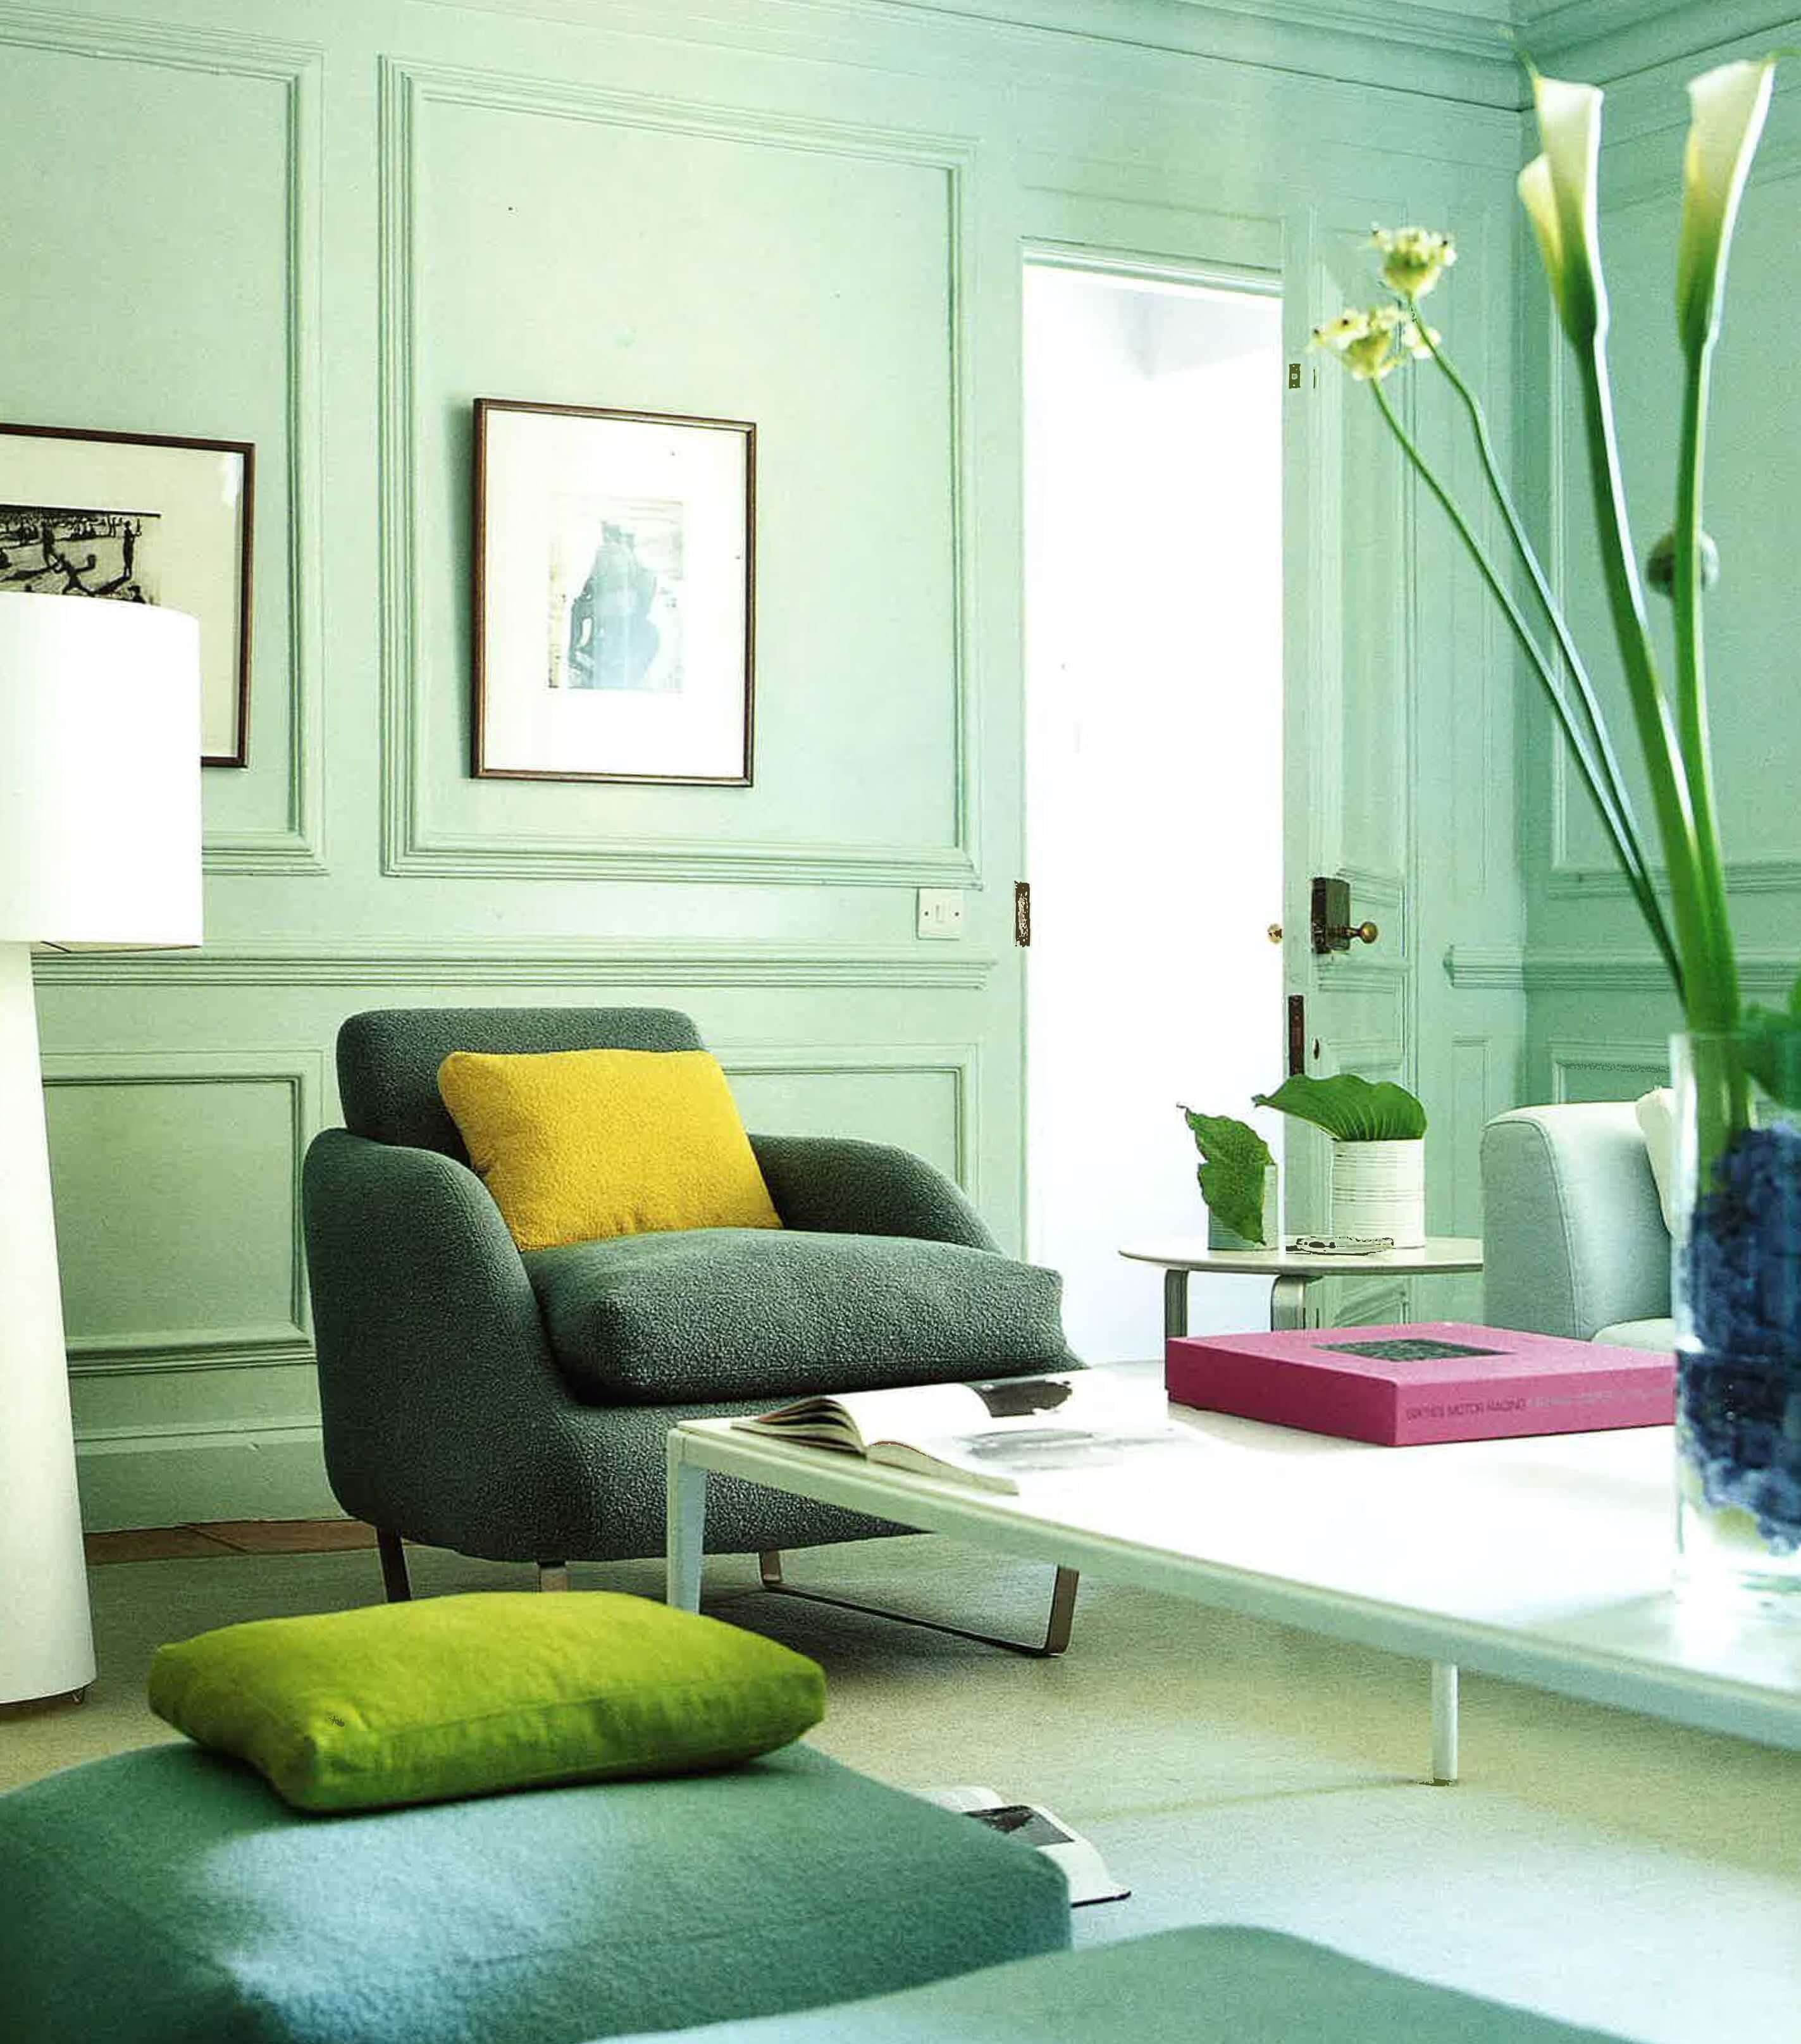 Light green living room with coffee table, plants and framed artwork